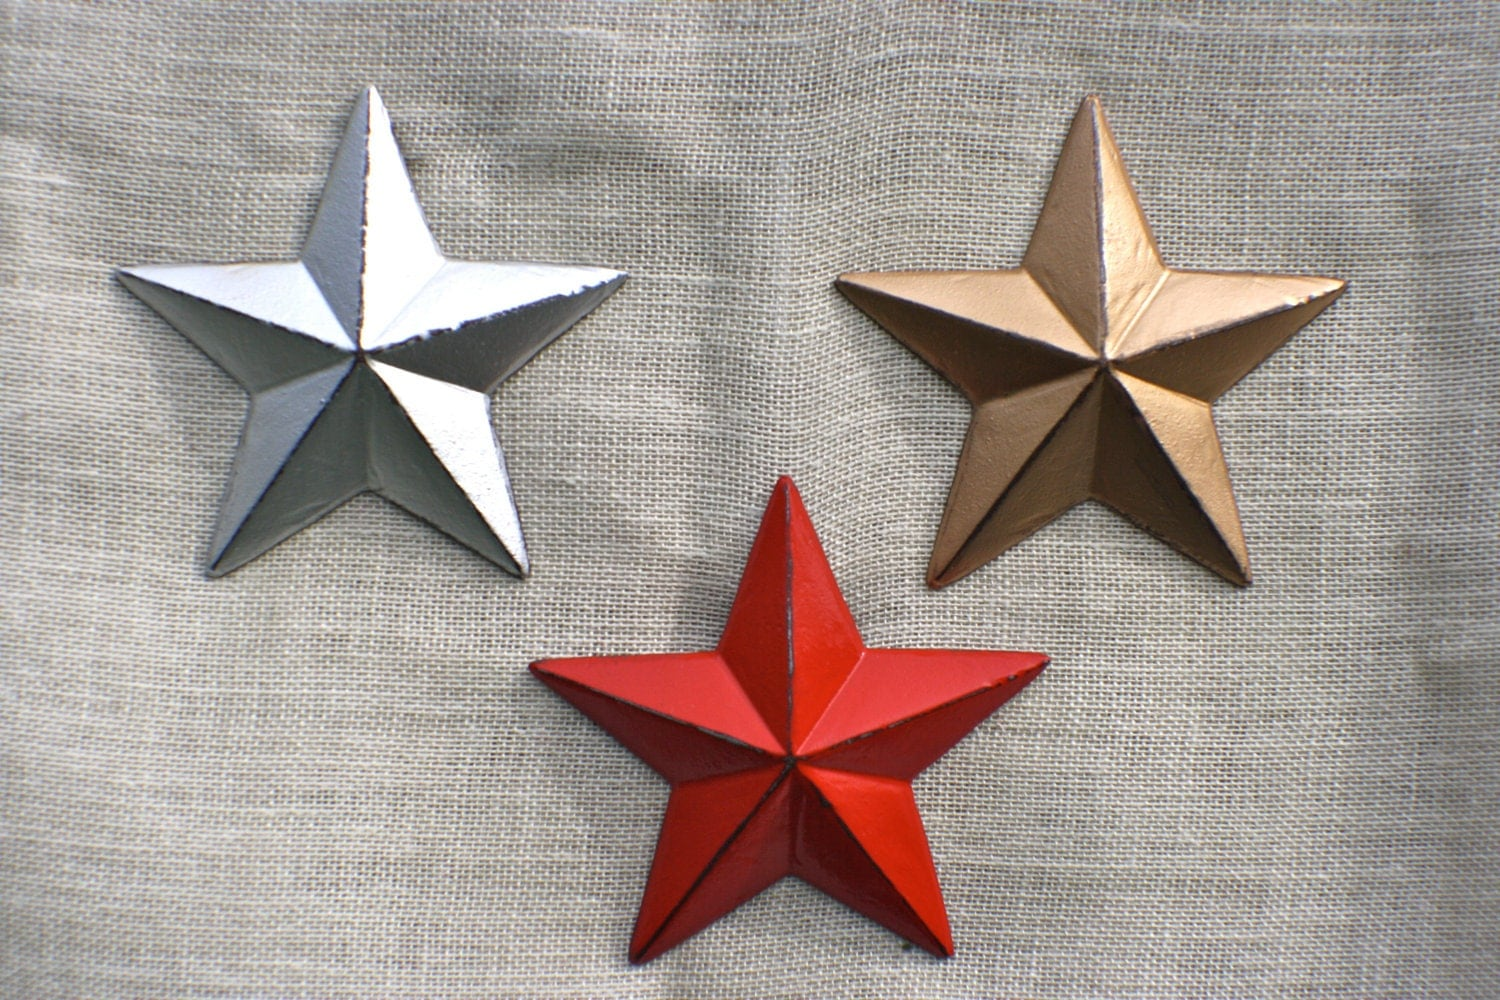 Star Wall Decor Ideas: Unavailable Listing On Etsy